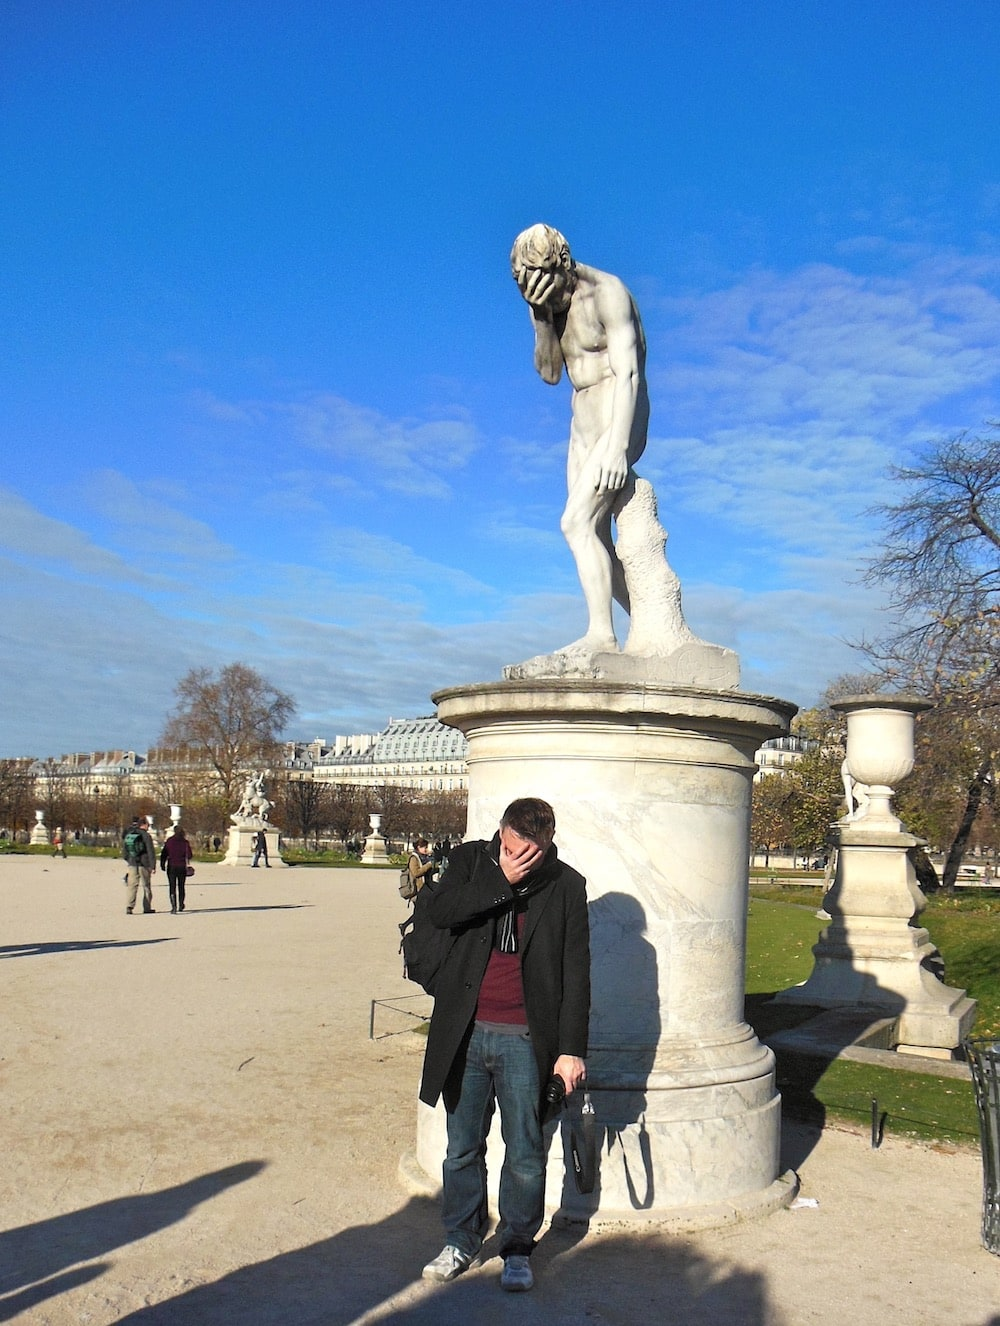 Phil with a statue making a similar pose of his head in his hands